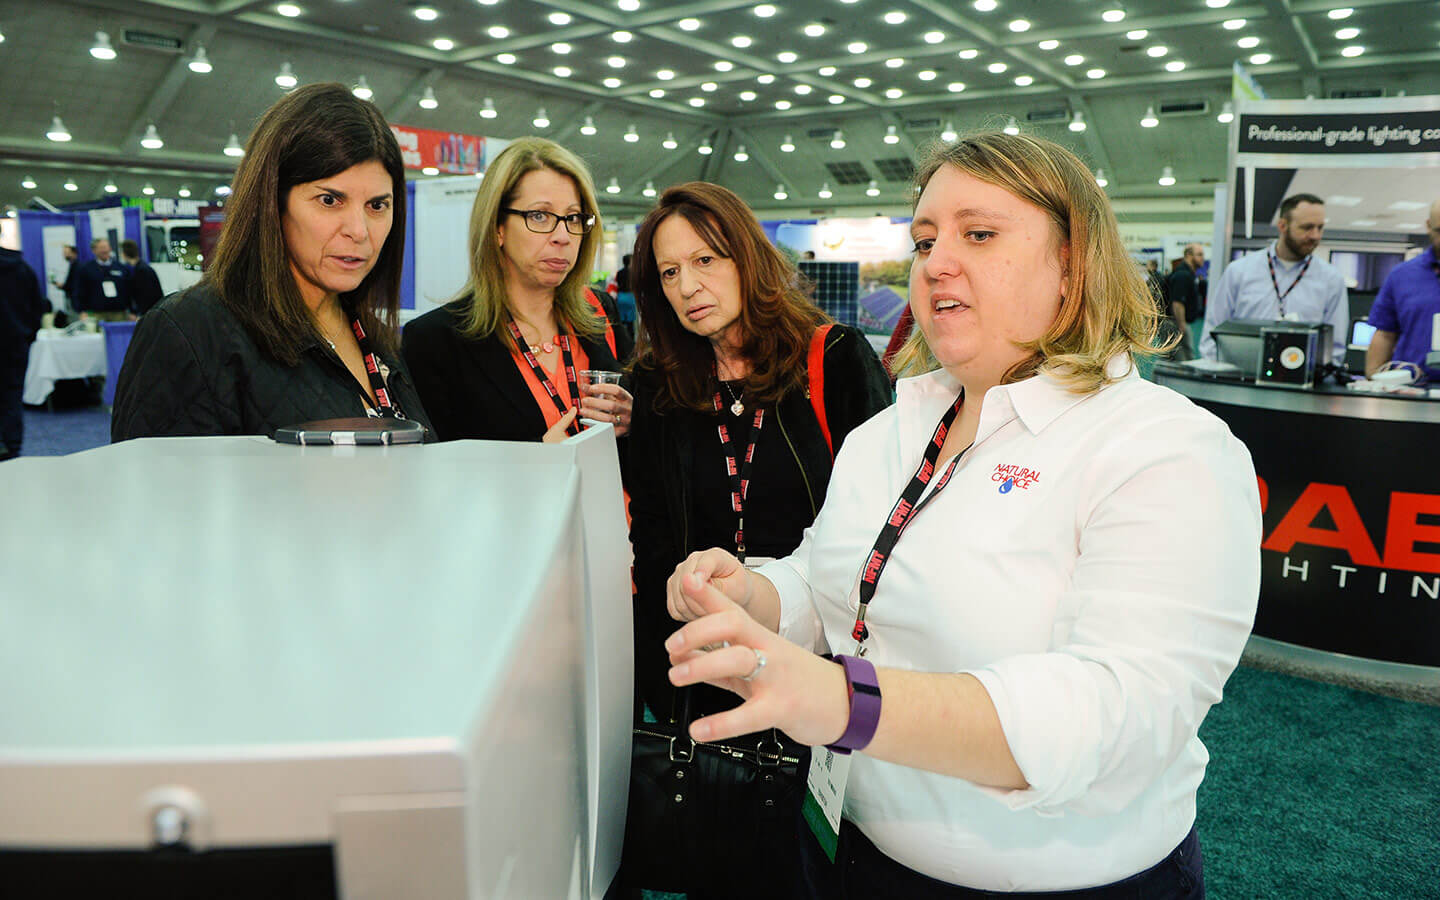 NFMT exhibitor showing product to group of women